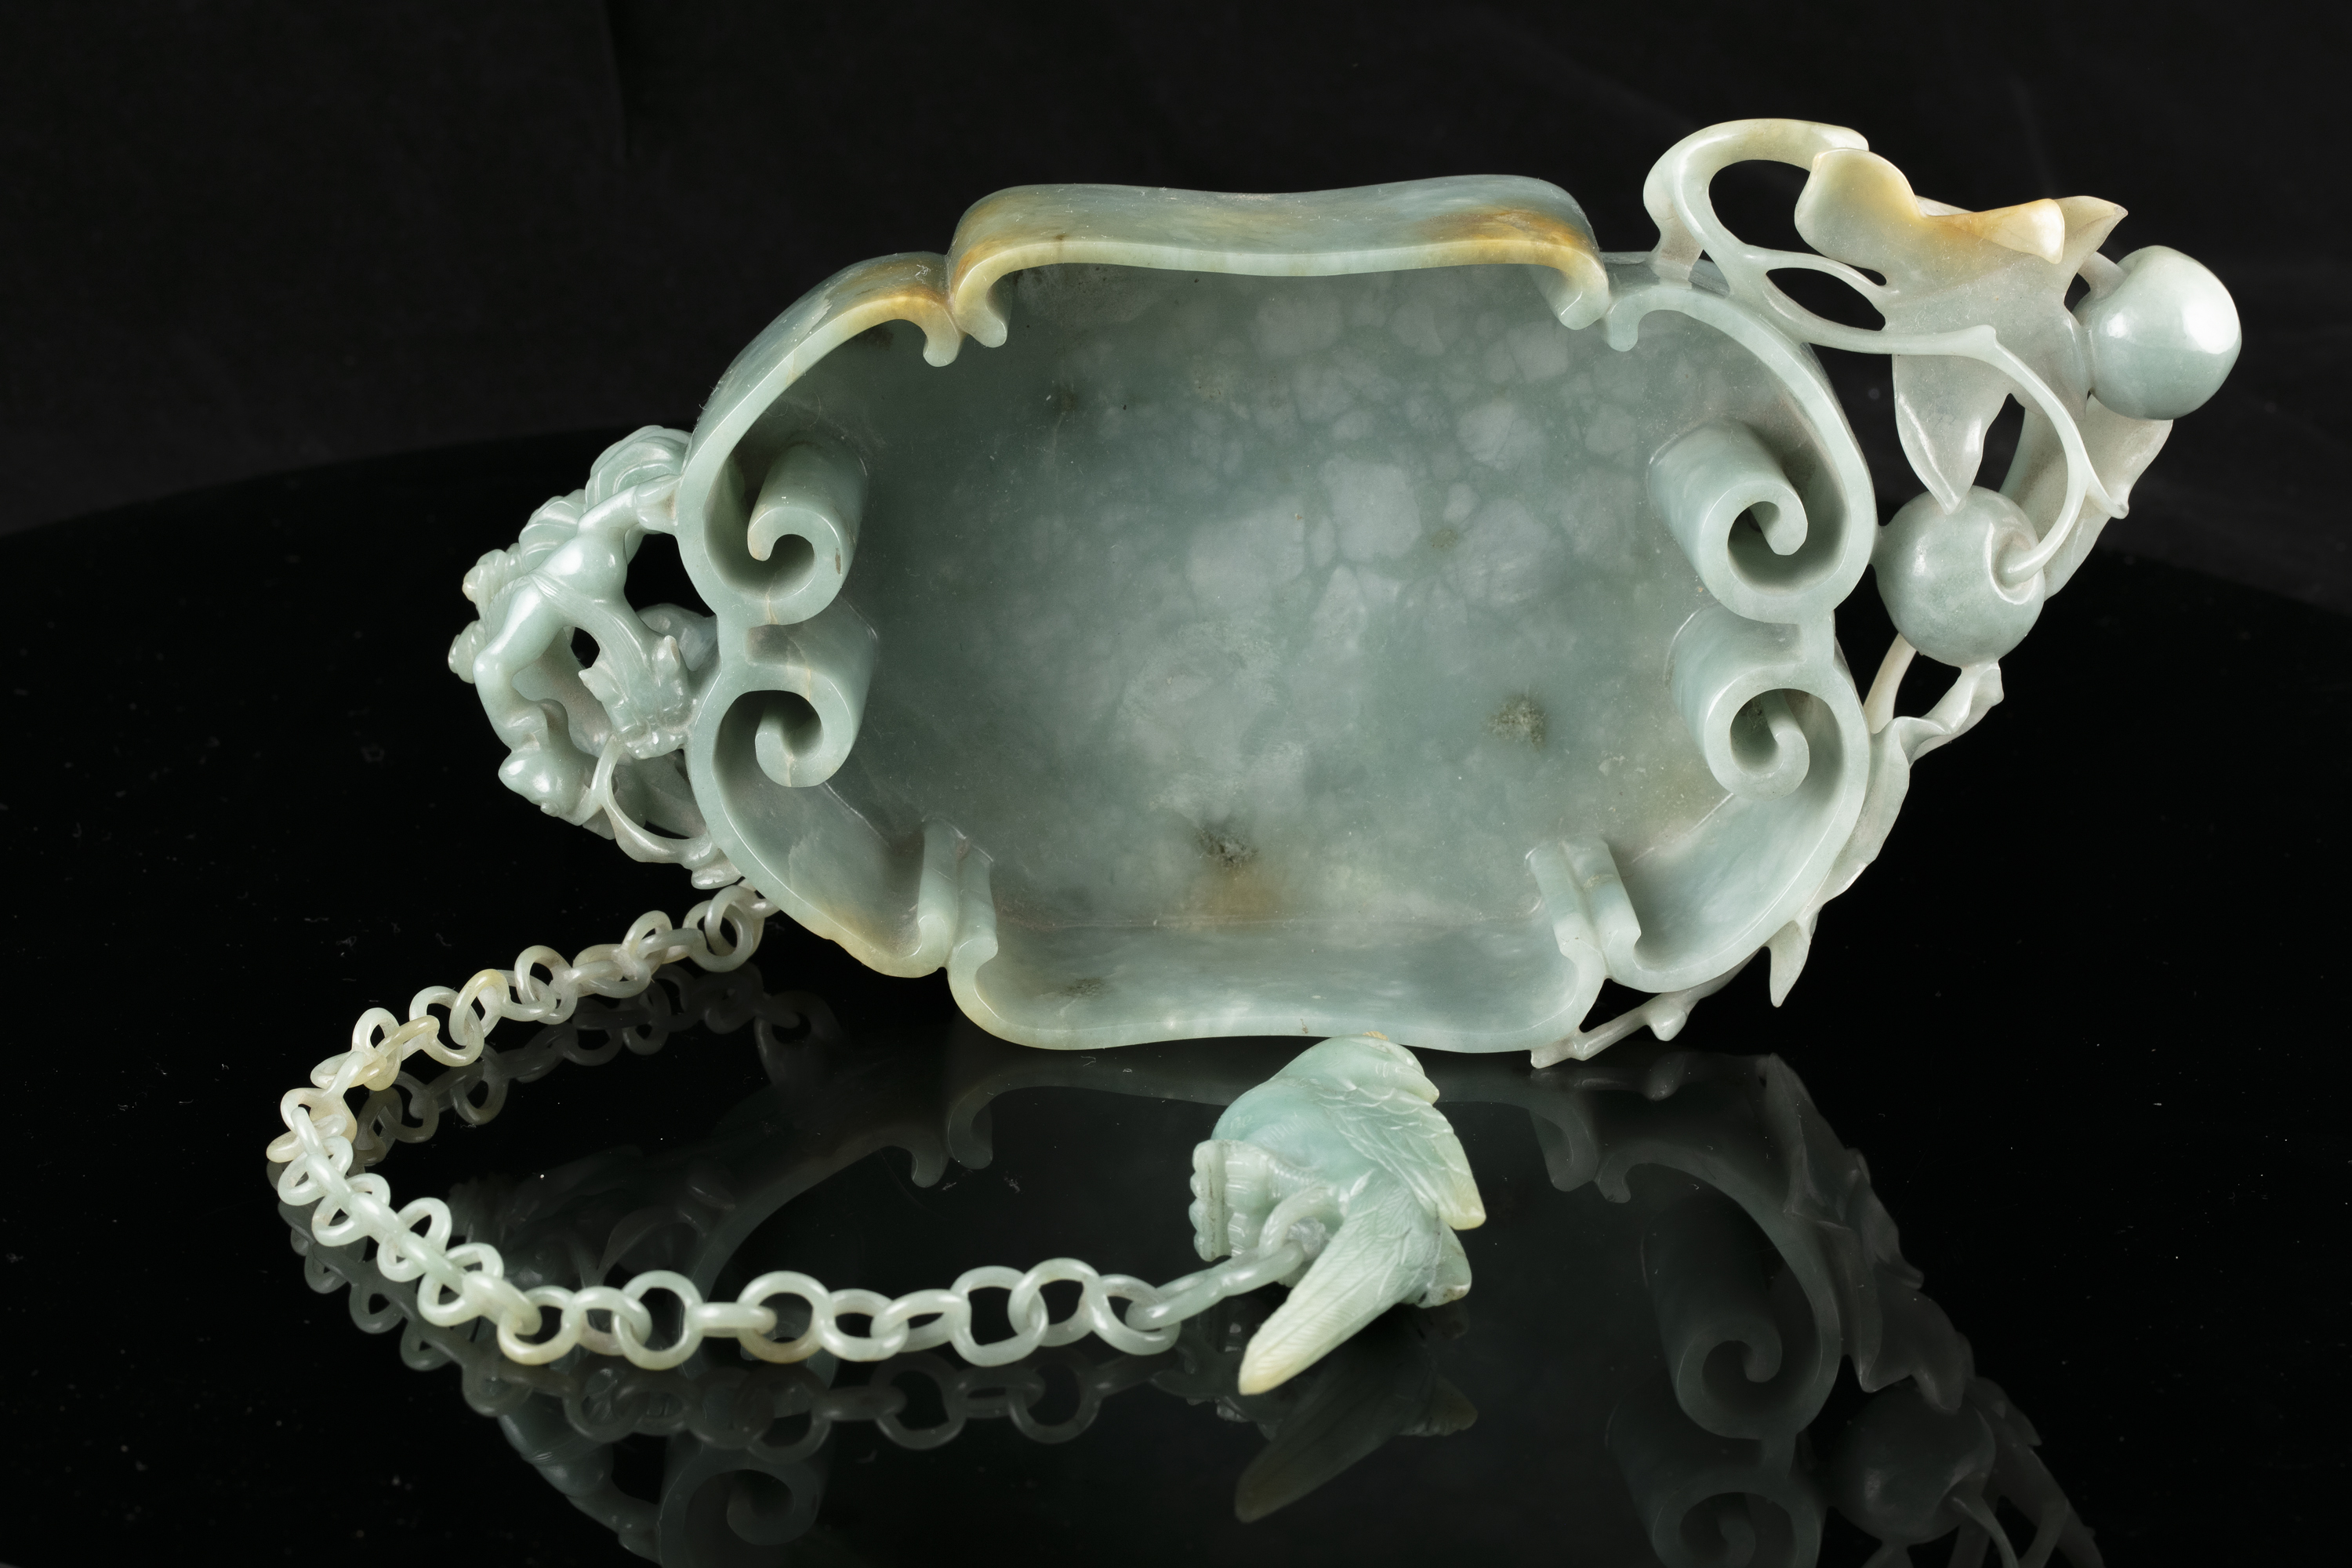 A LINGZHI-SHAPED JADEITE JADE BRUSHWASHER WITH A PARROT China, Qing Dynasty, 19th century - Image 22 of 35